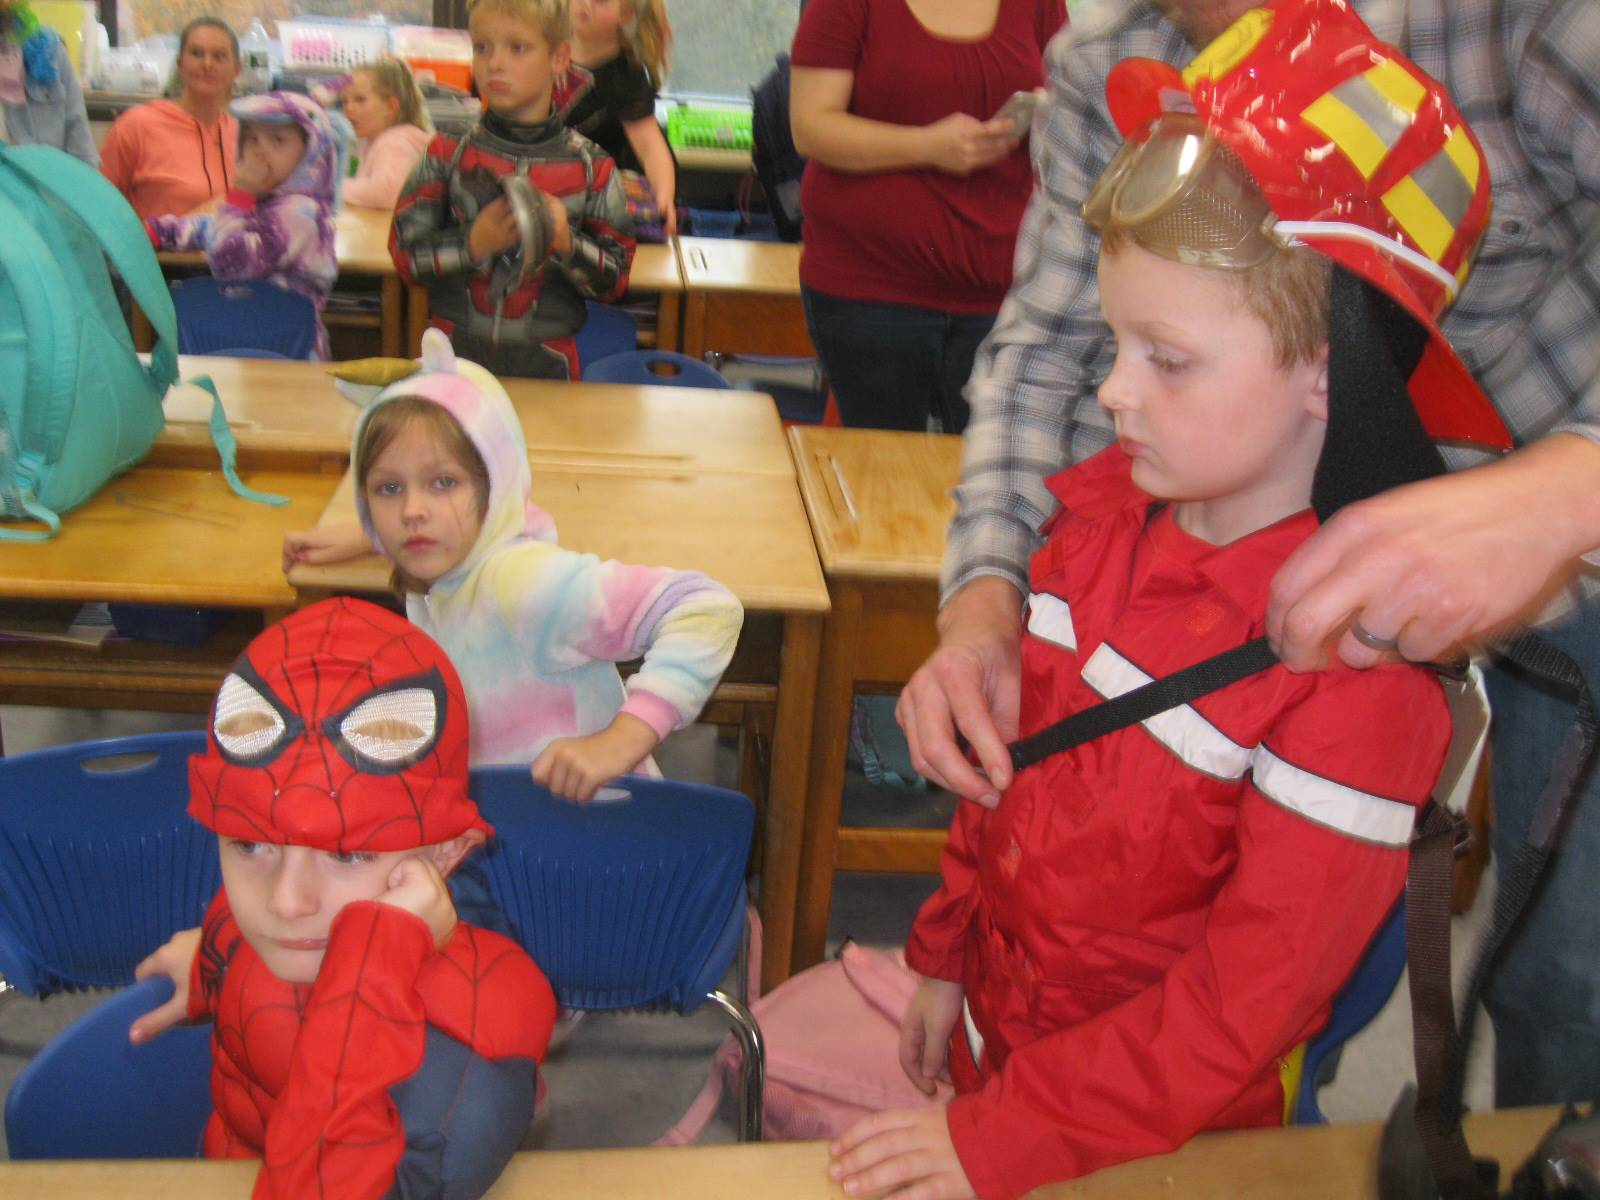 a firefighter and spiderman